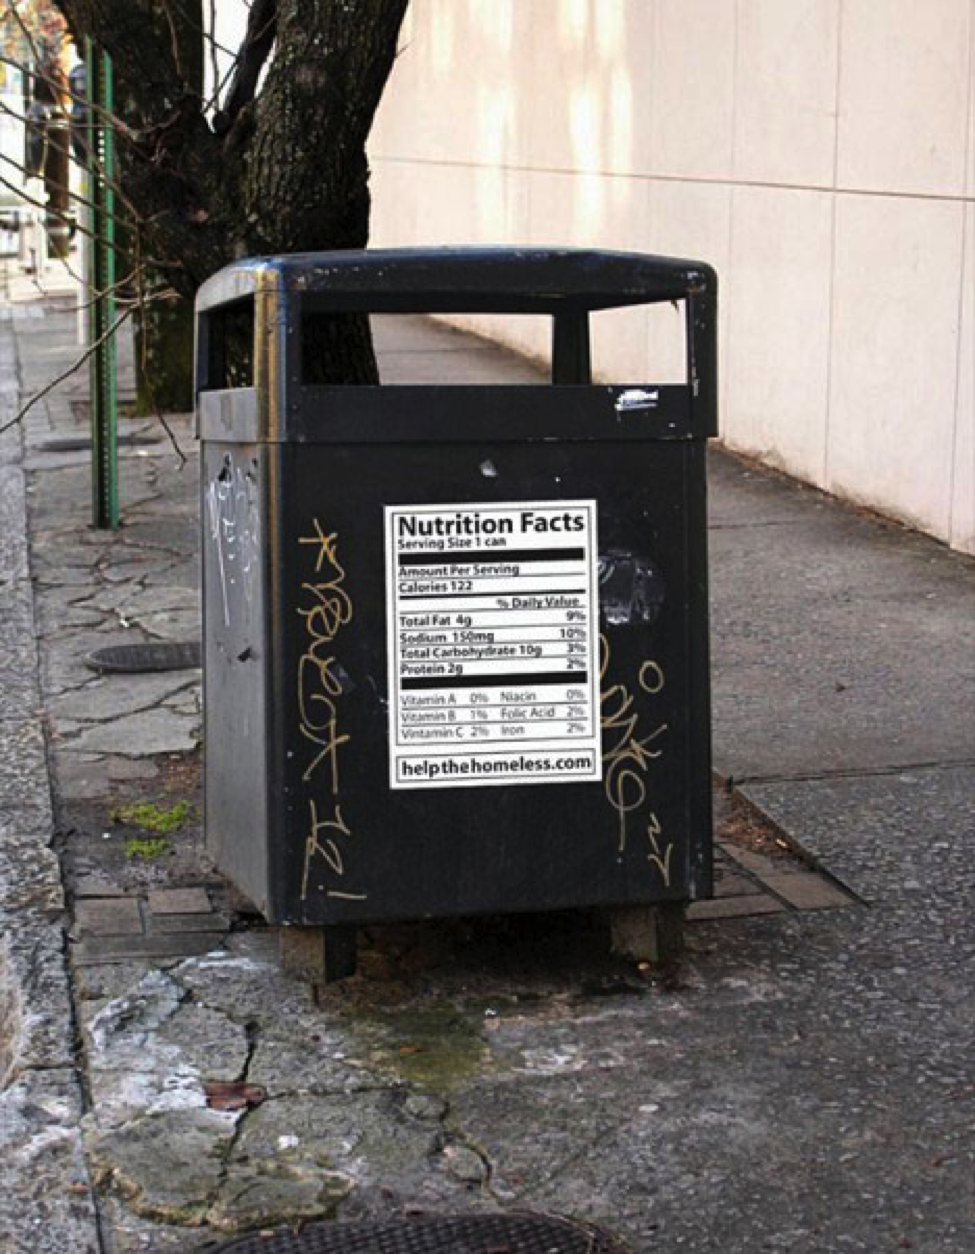 Guerrilla marketing: nutrition facts on trash can ad